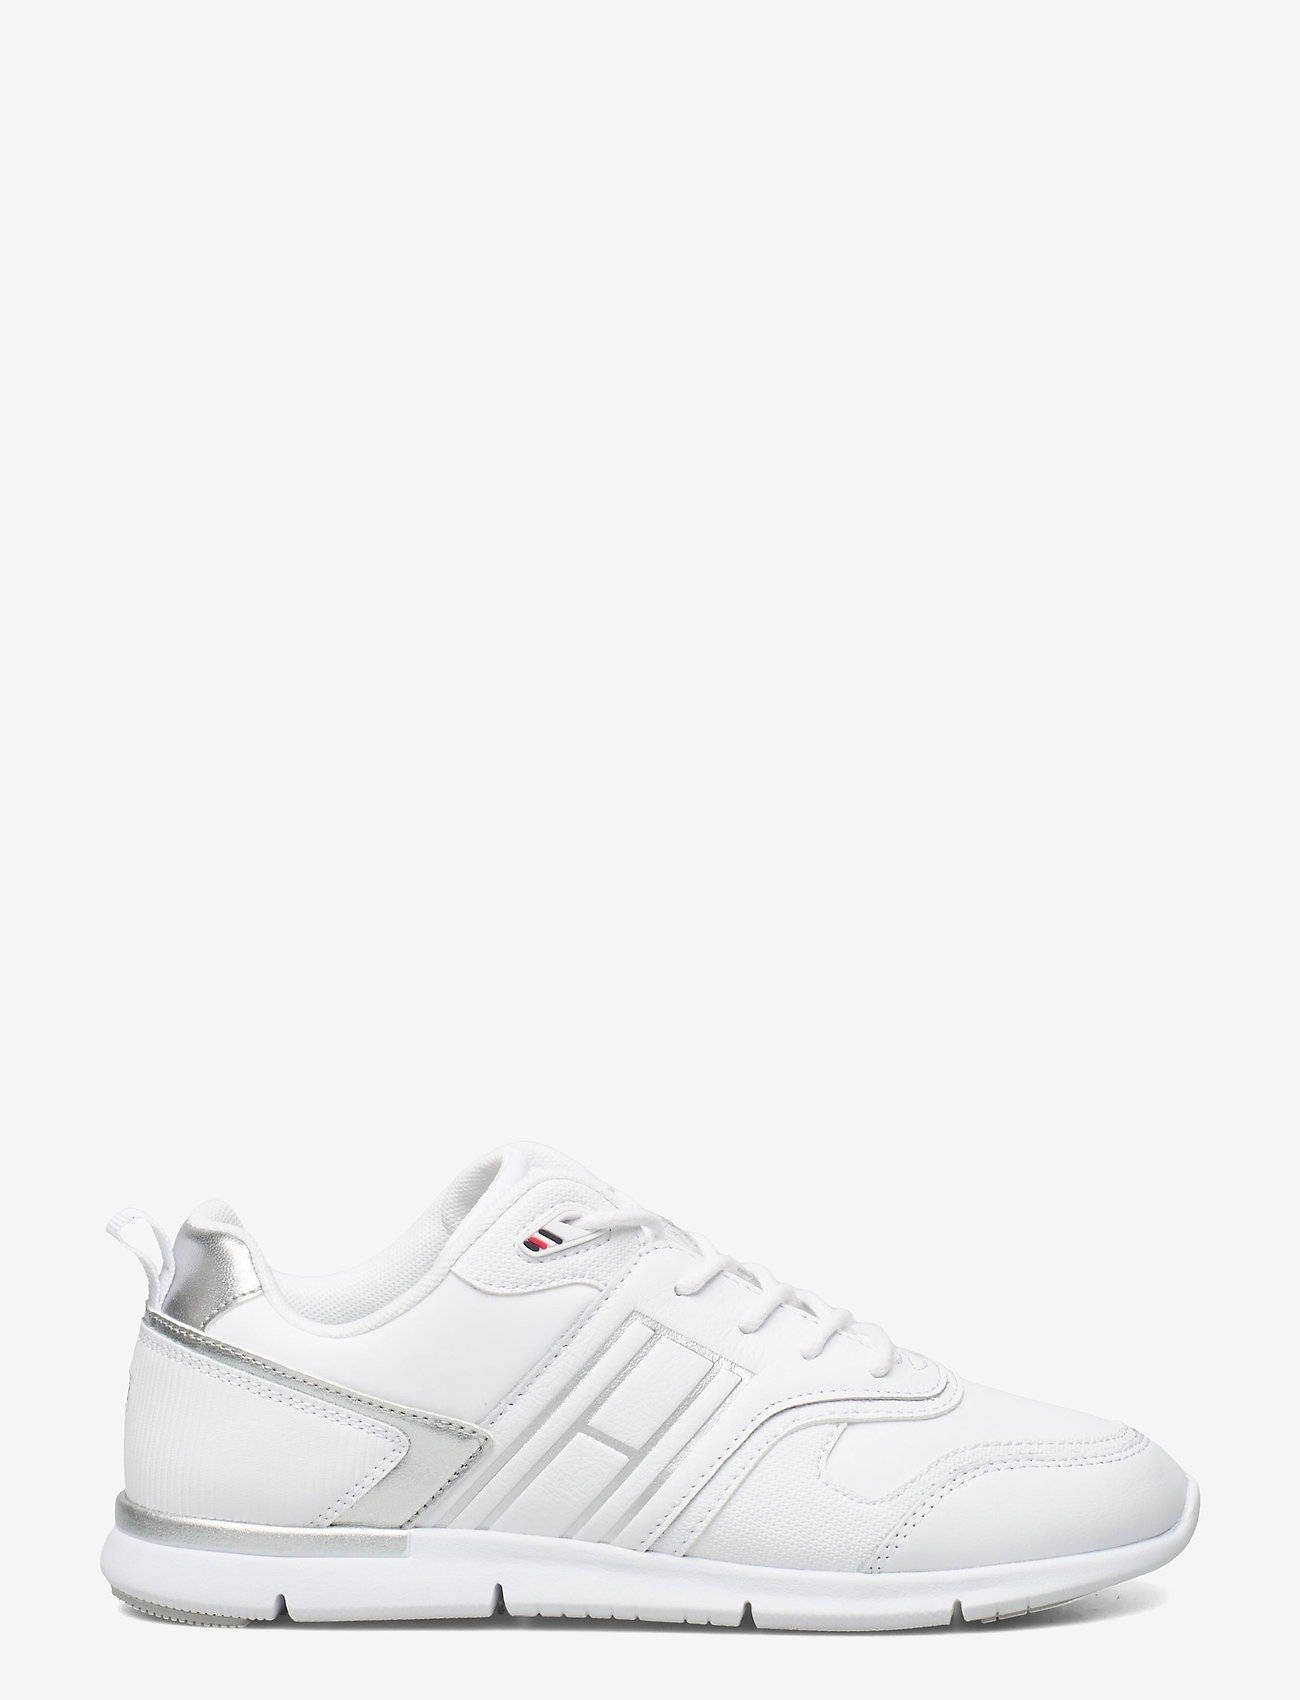 Tommy Hilfiger - METALLIC LIGHTWEIGHT SNEAKER - low top sneakers - white - 1